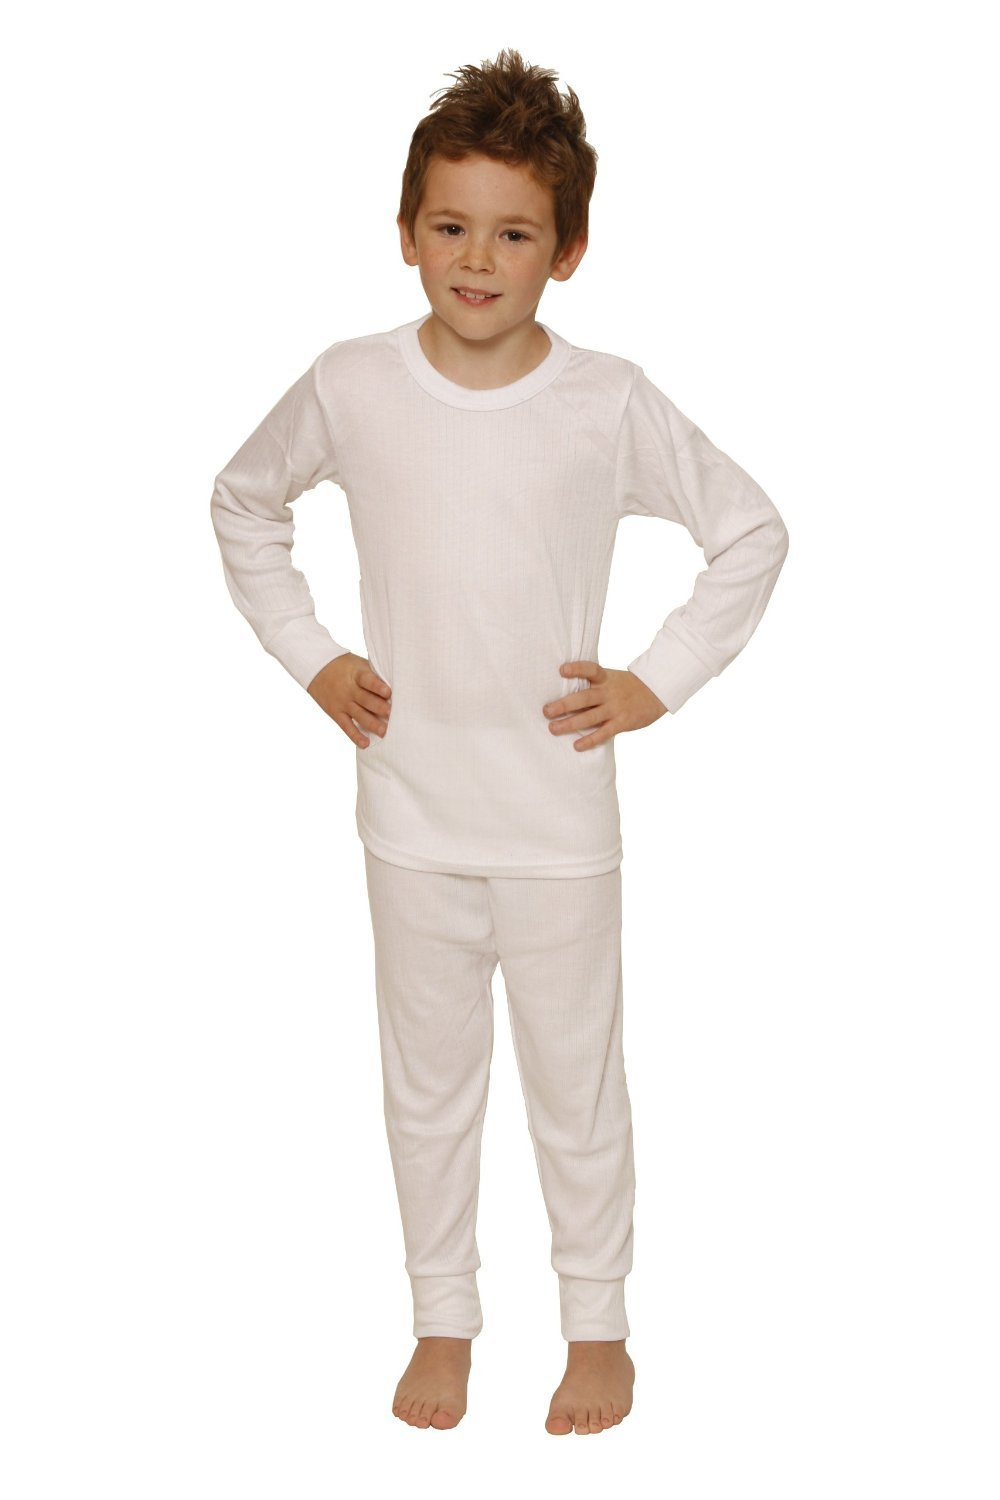 OCTAVE® Boys Thermal Underwear Set : Long Sleeve Vest & Long Pants